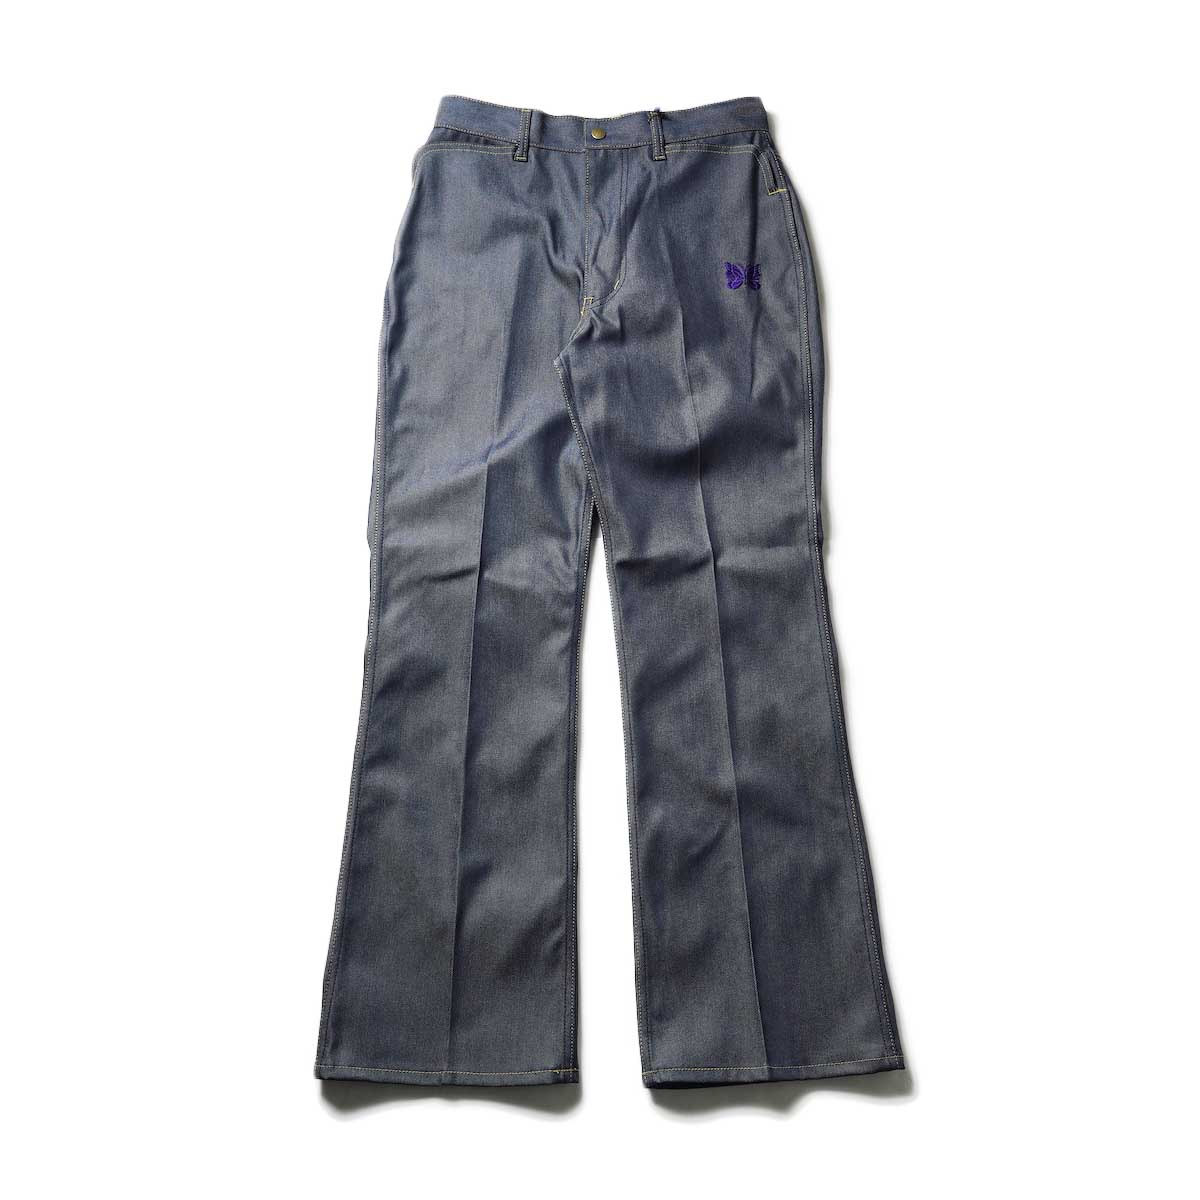 Needles / BOOT-CUT JEAN - 10.5OZ POLY TWILL (Navy)正面